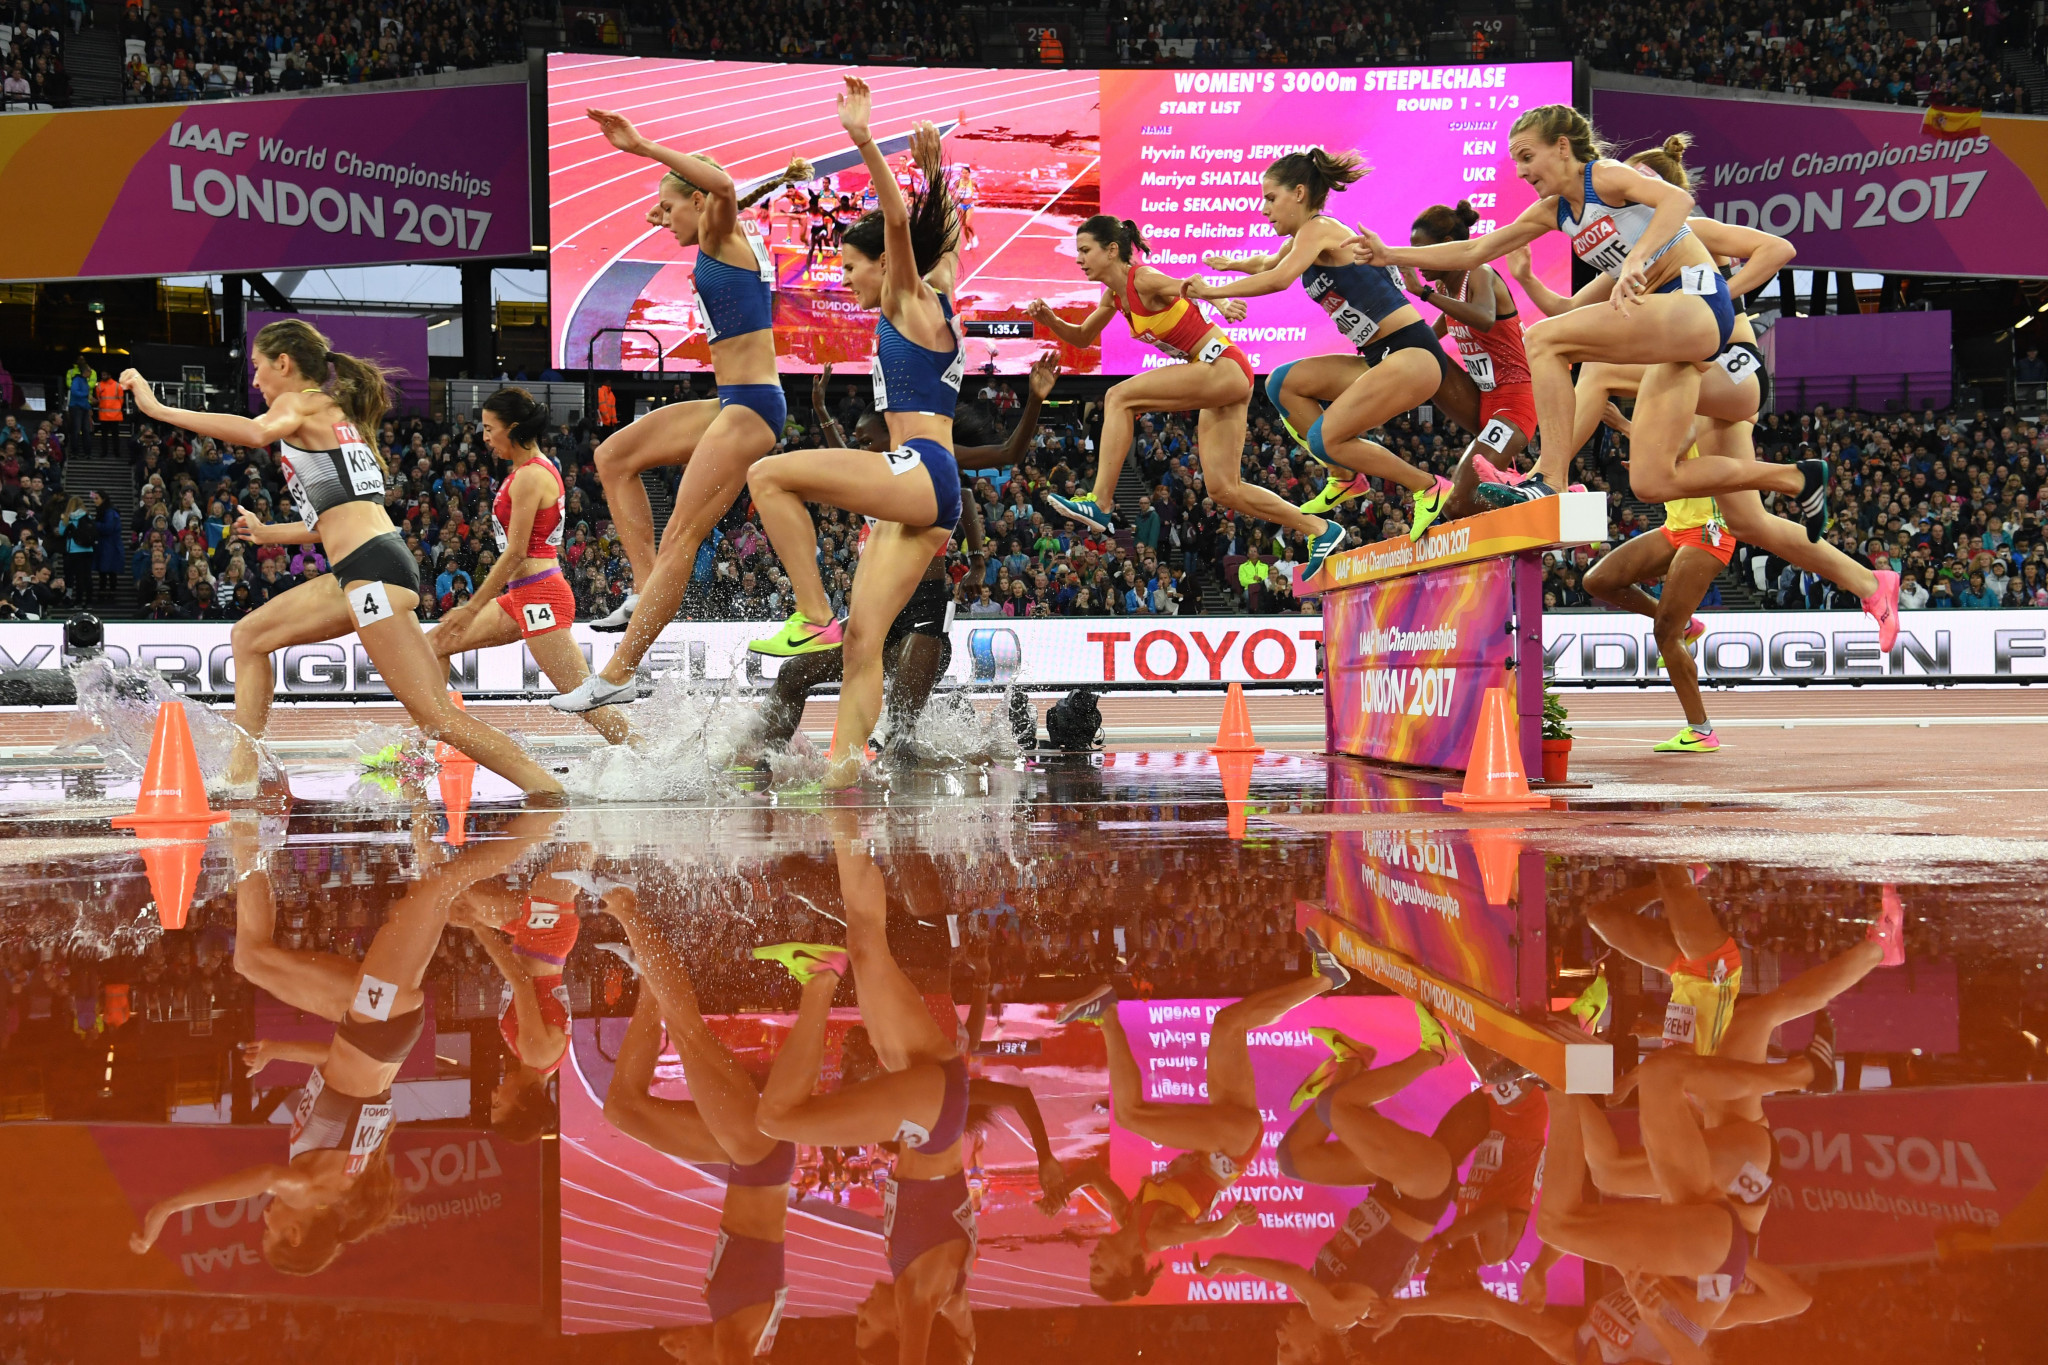 London staged the 2017 edition of the World Athletics Championships in the stadium built for the 2012 Olympics ©Getty Images